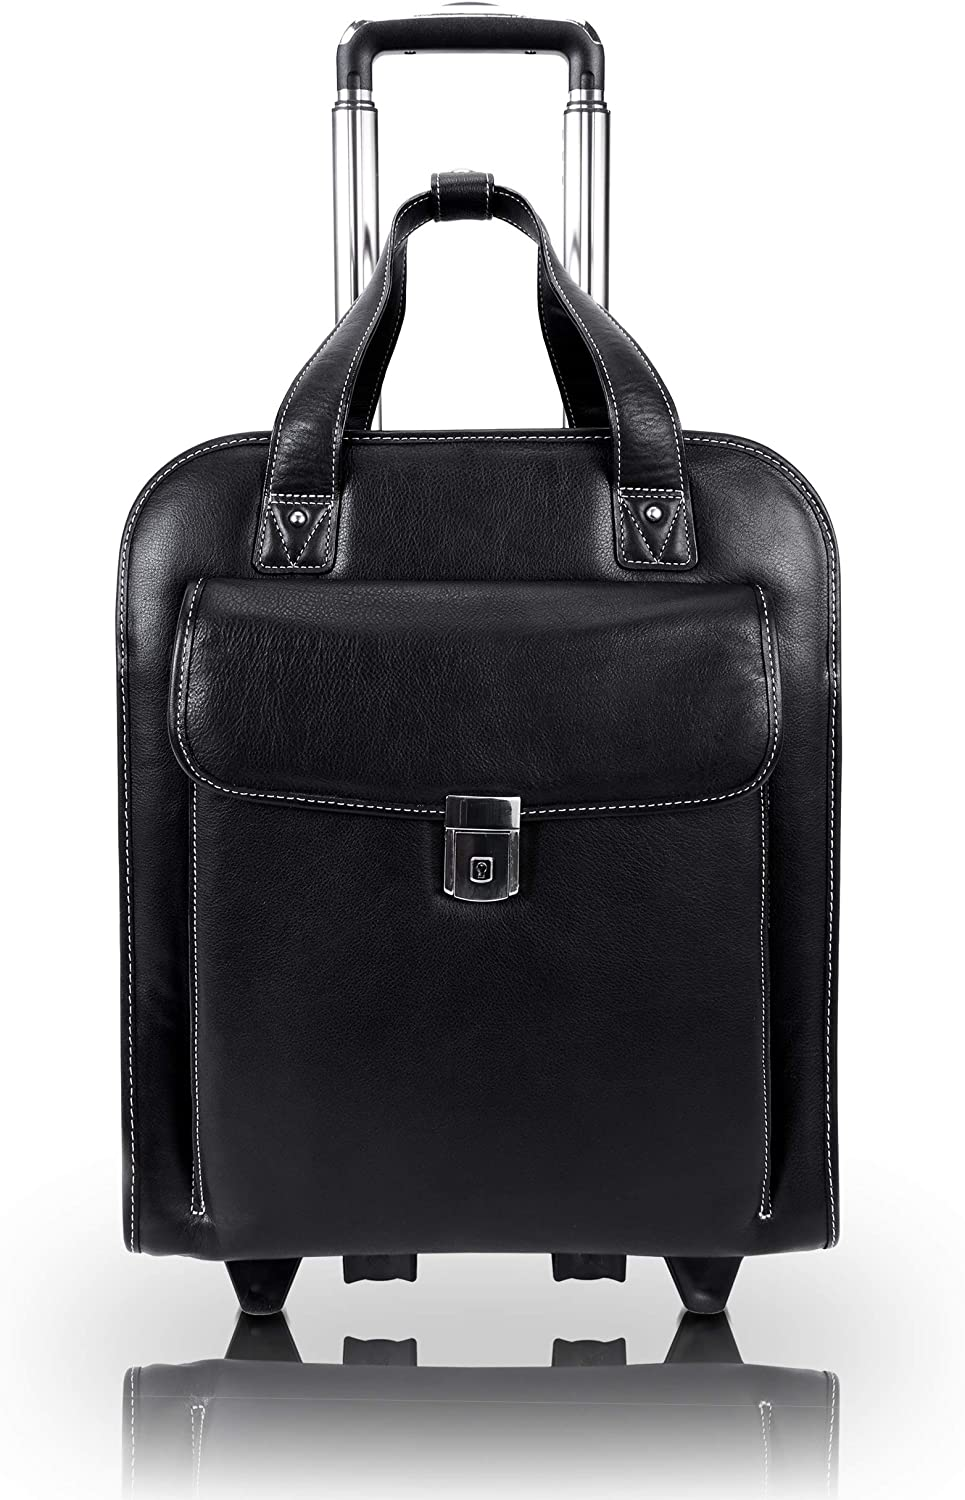 "McKlein USA Pastenello 15.6"" Leather Vertical Patented Detachable Wheeled Laptop Briefcase"